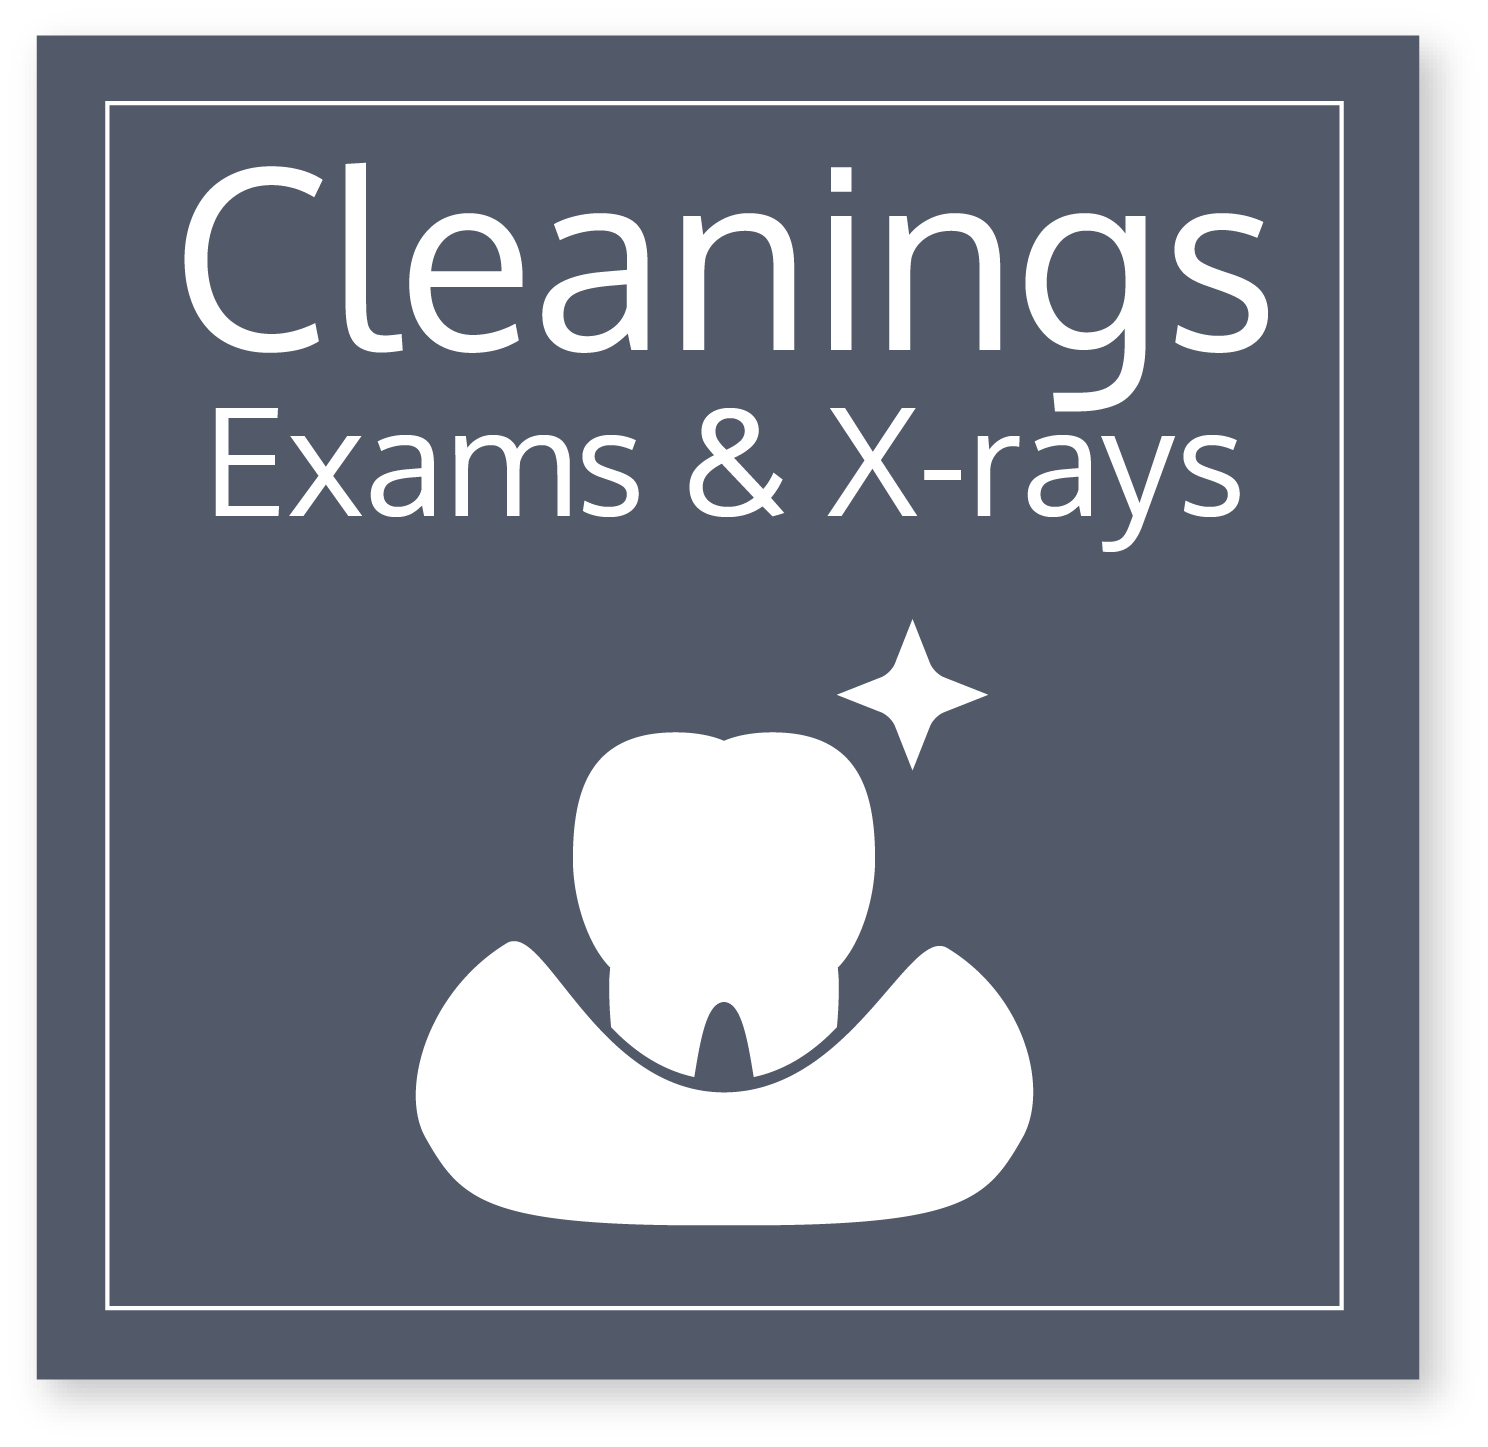 Cleanings and Exams at Fresh Dentistry